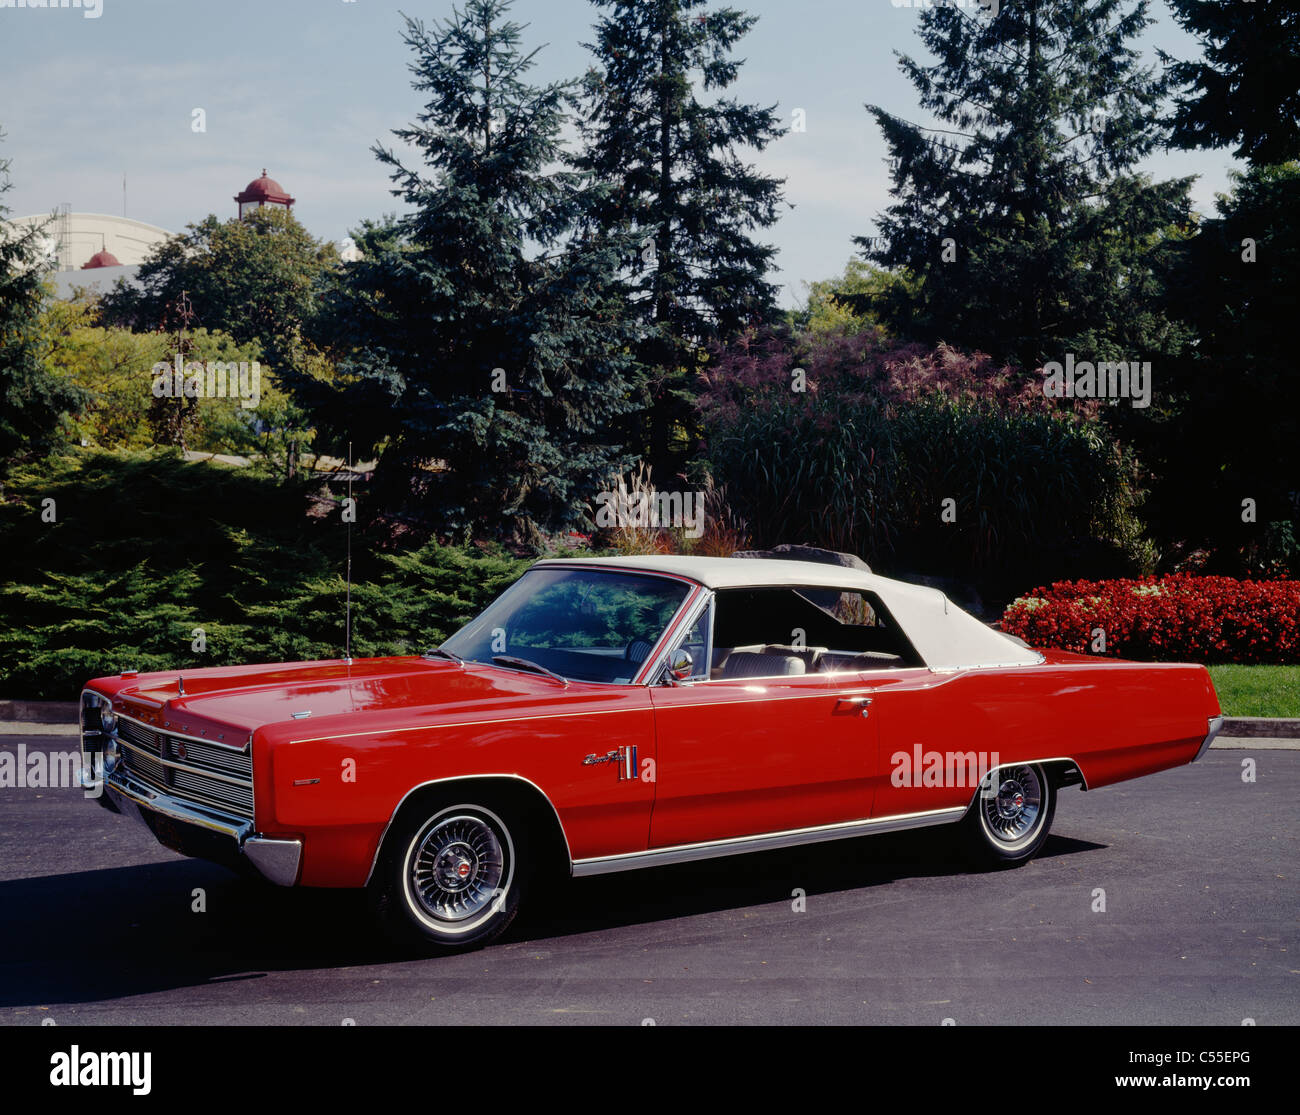 Convertible car on the road, Plymouth Fury - Stock Image